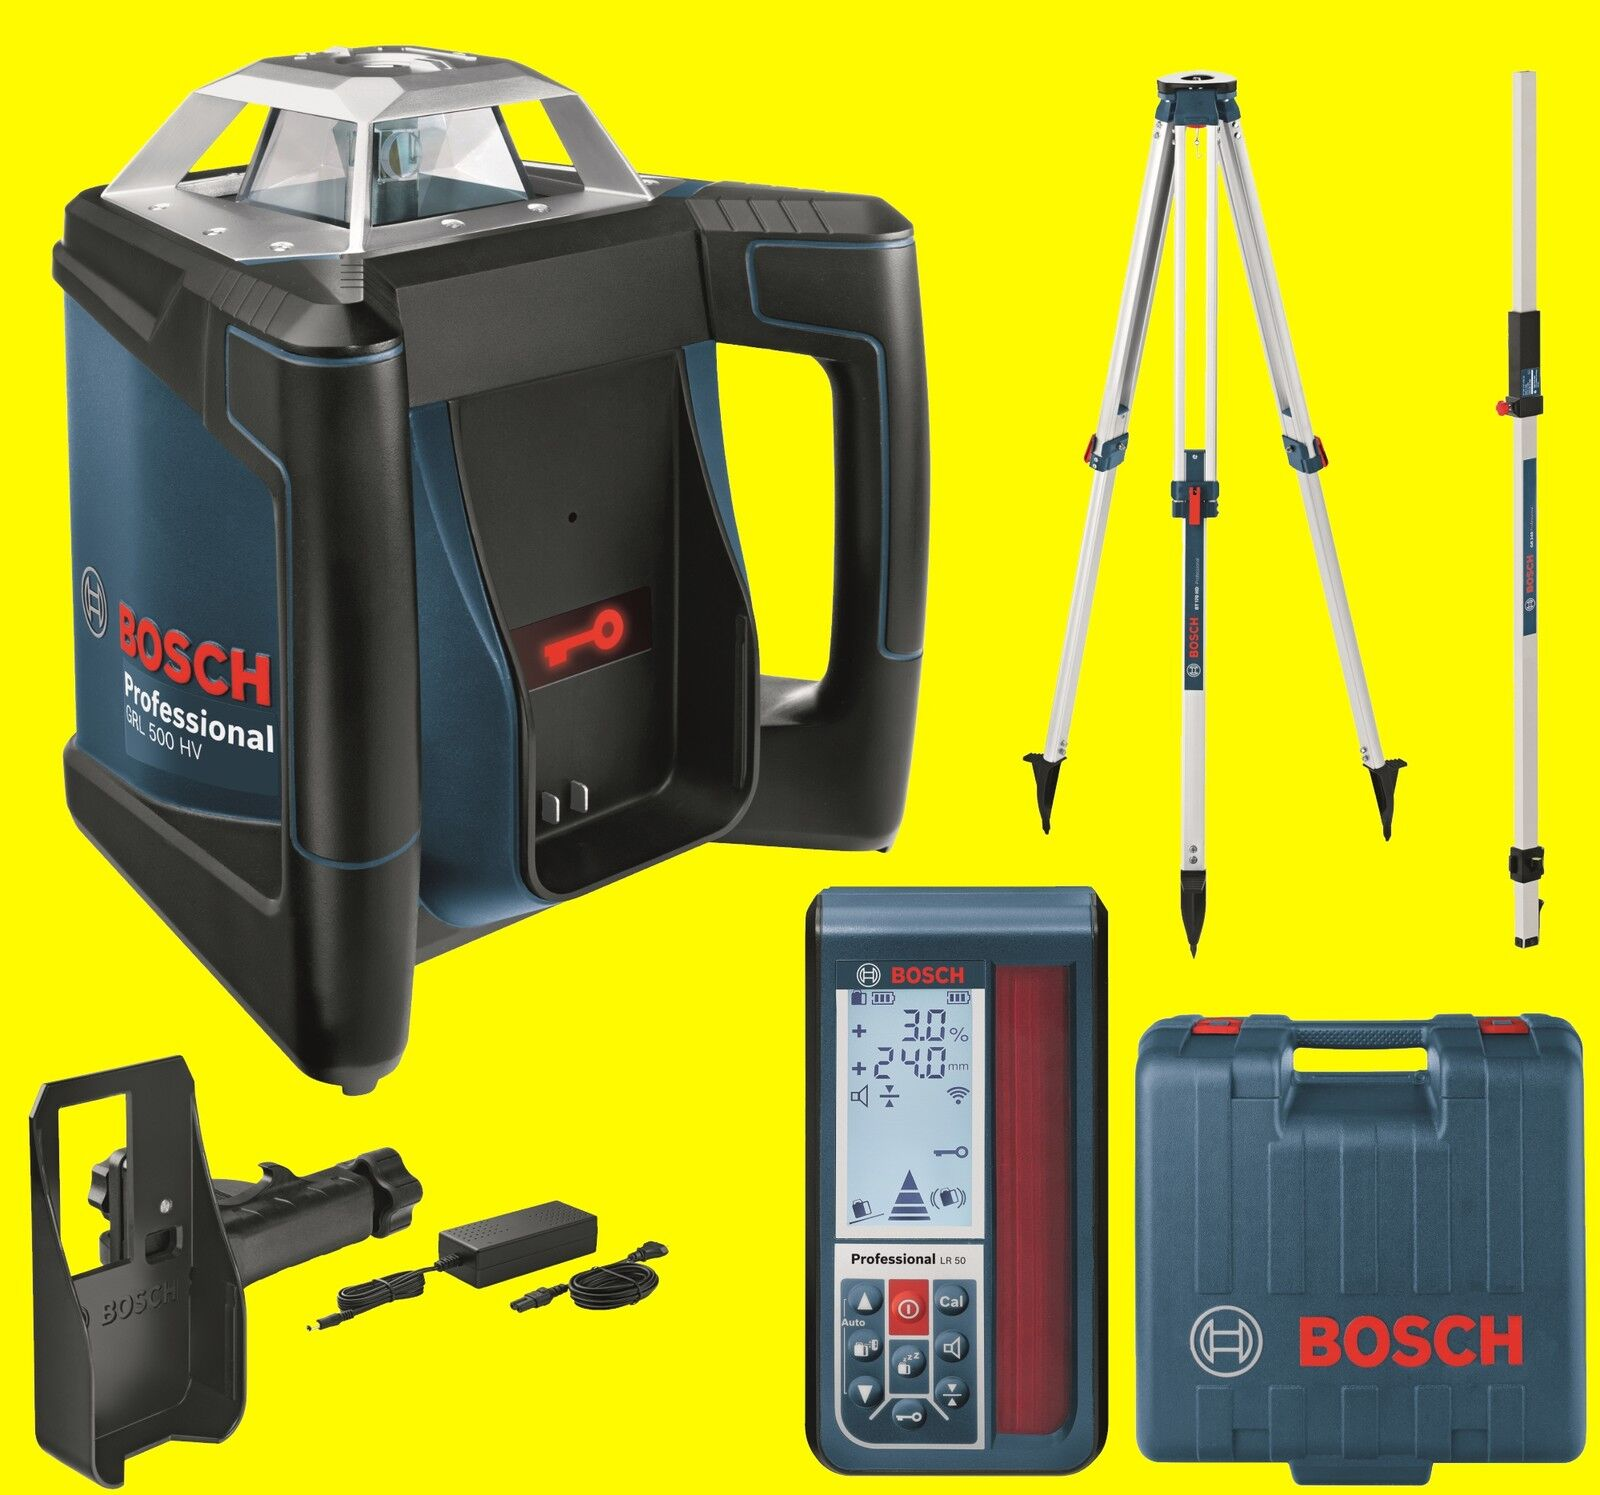 BOSCH Rotationslaser SET GRL 500 HV + LR 50 + Stativ BT 170HD Laser H